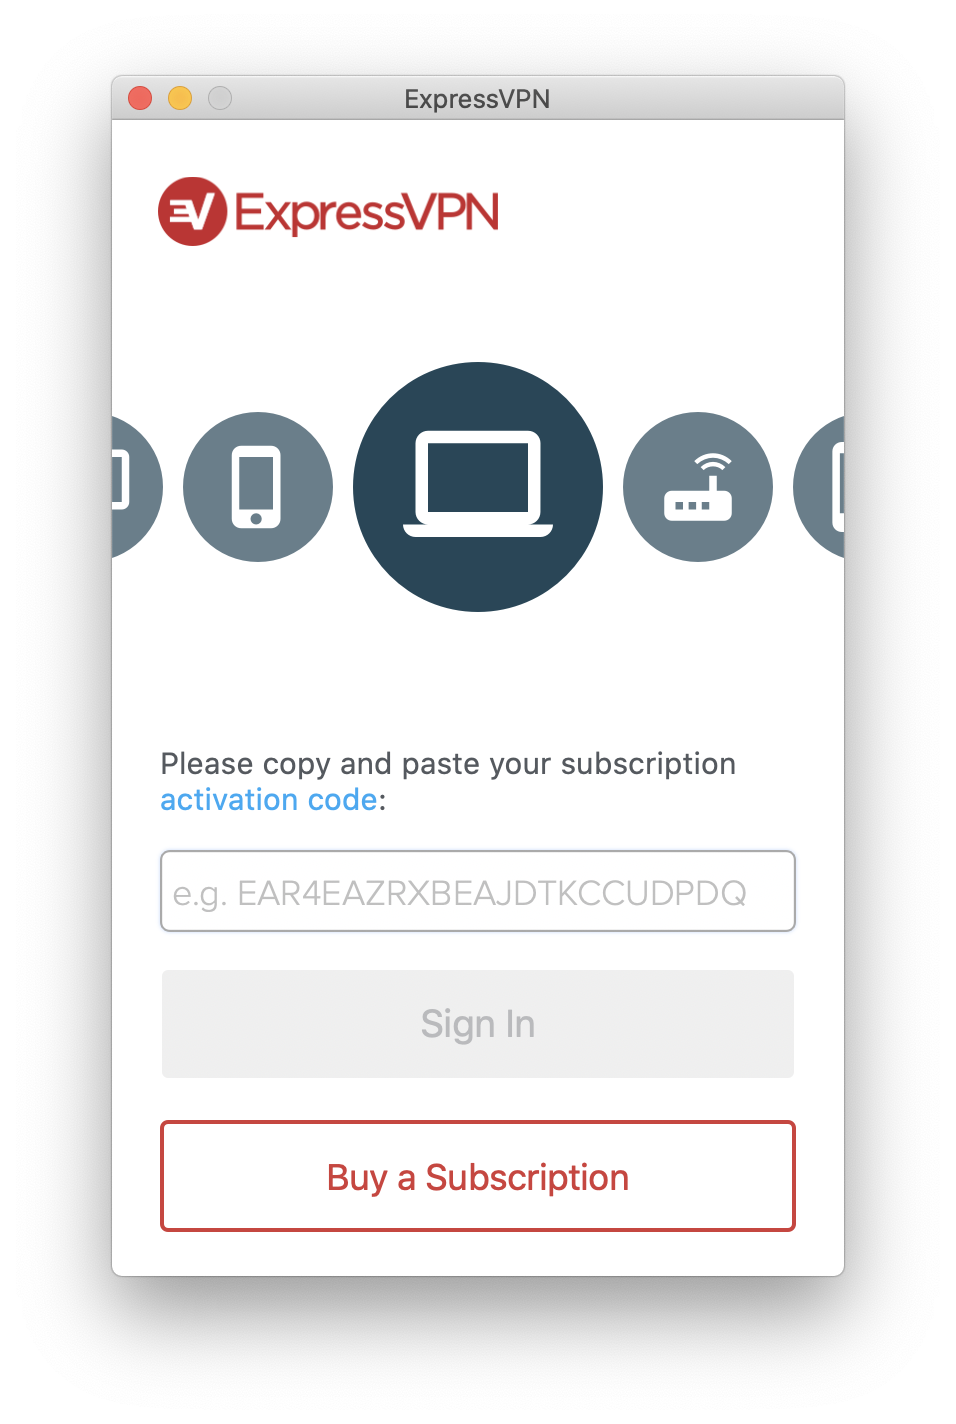 Copy your activation code